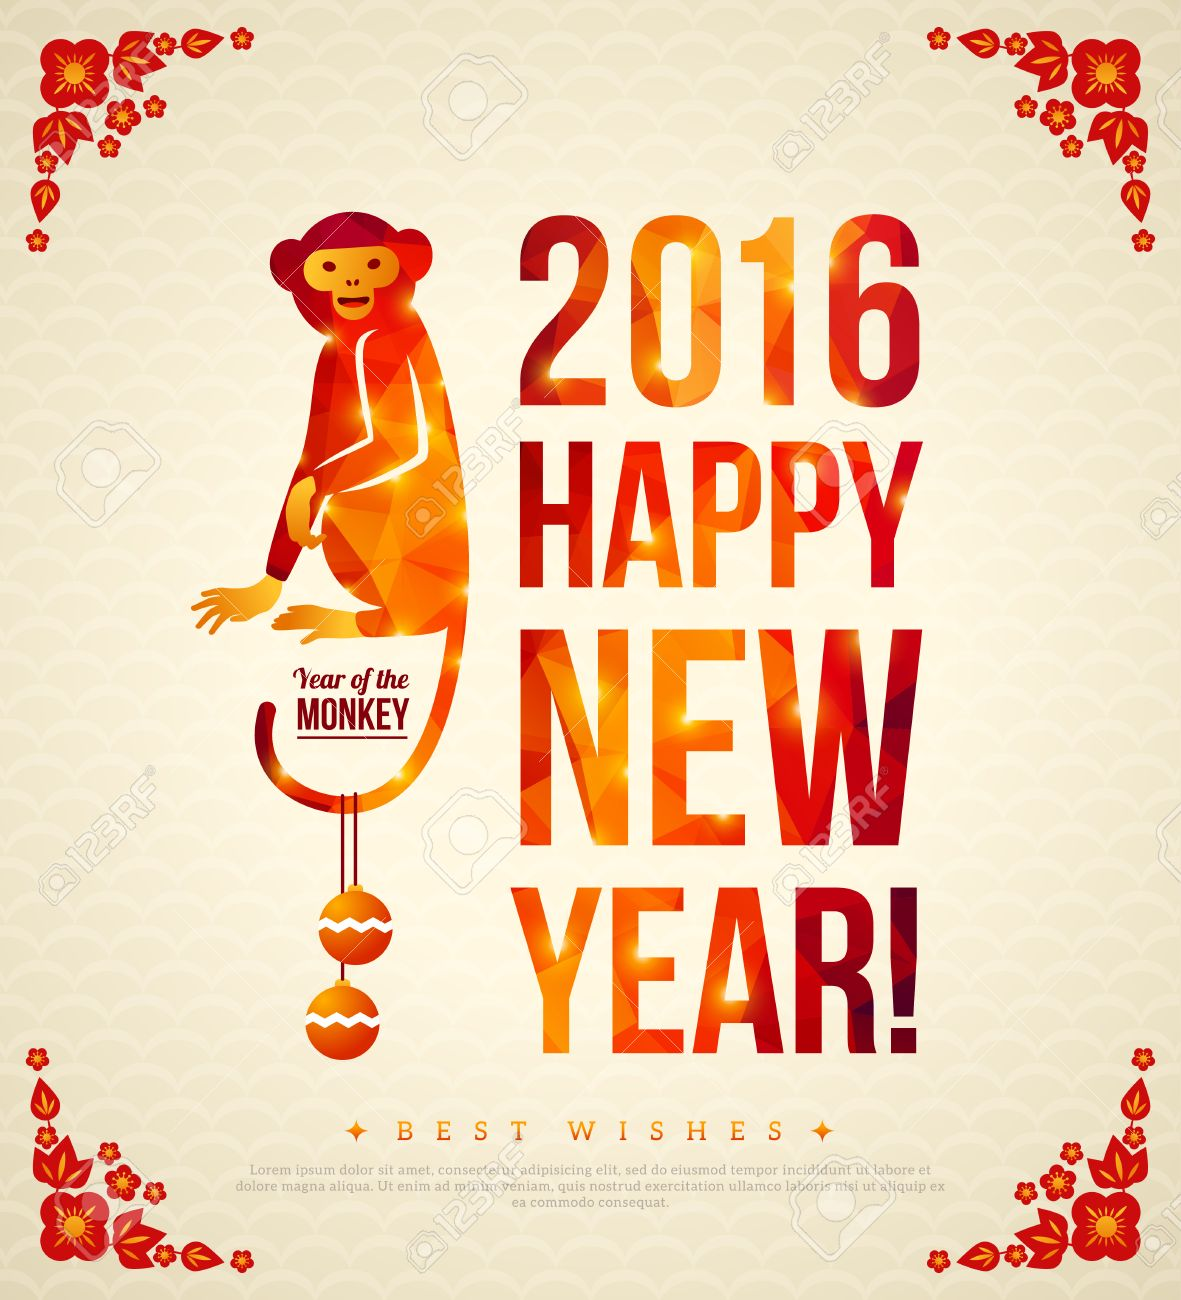 Happy chinese new year 2016 greeting card vector illustration happy chinese new year 2016 greeting card vector illustration year of the monkey kristyandbryce Choice Image